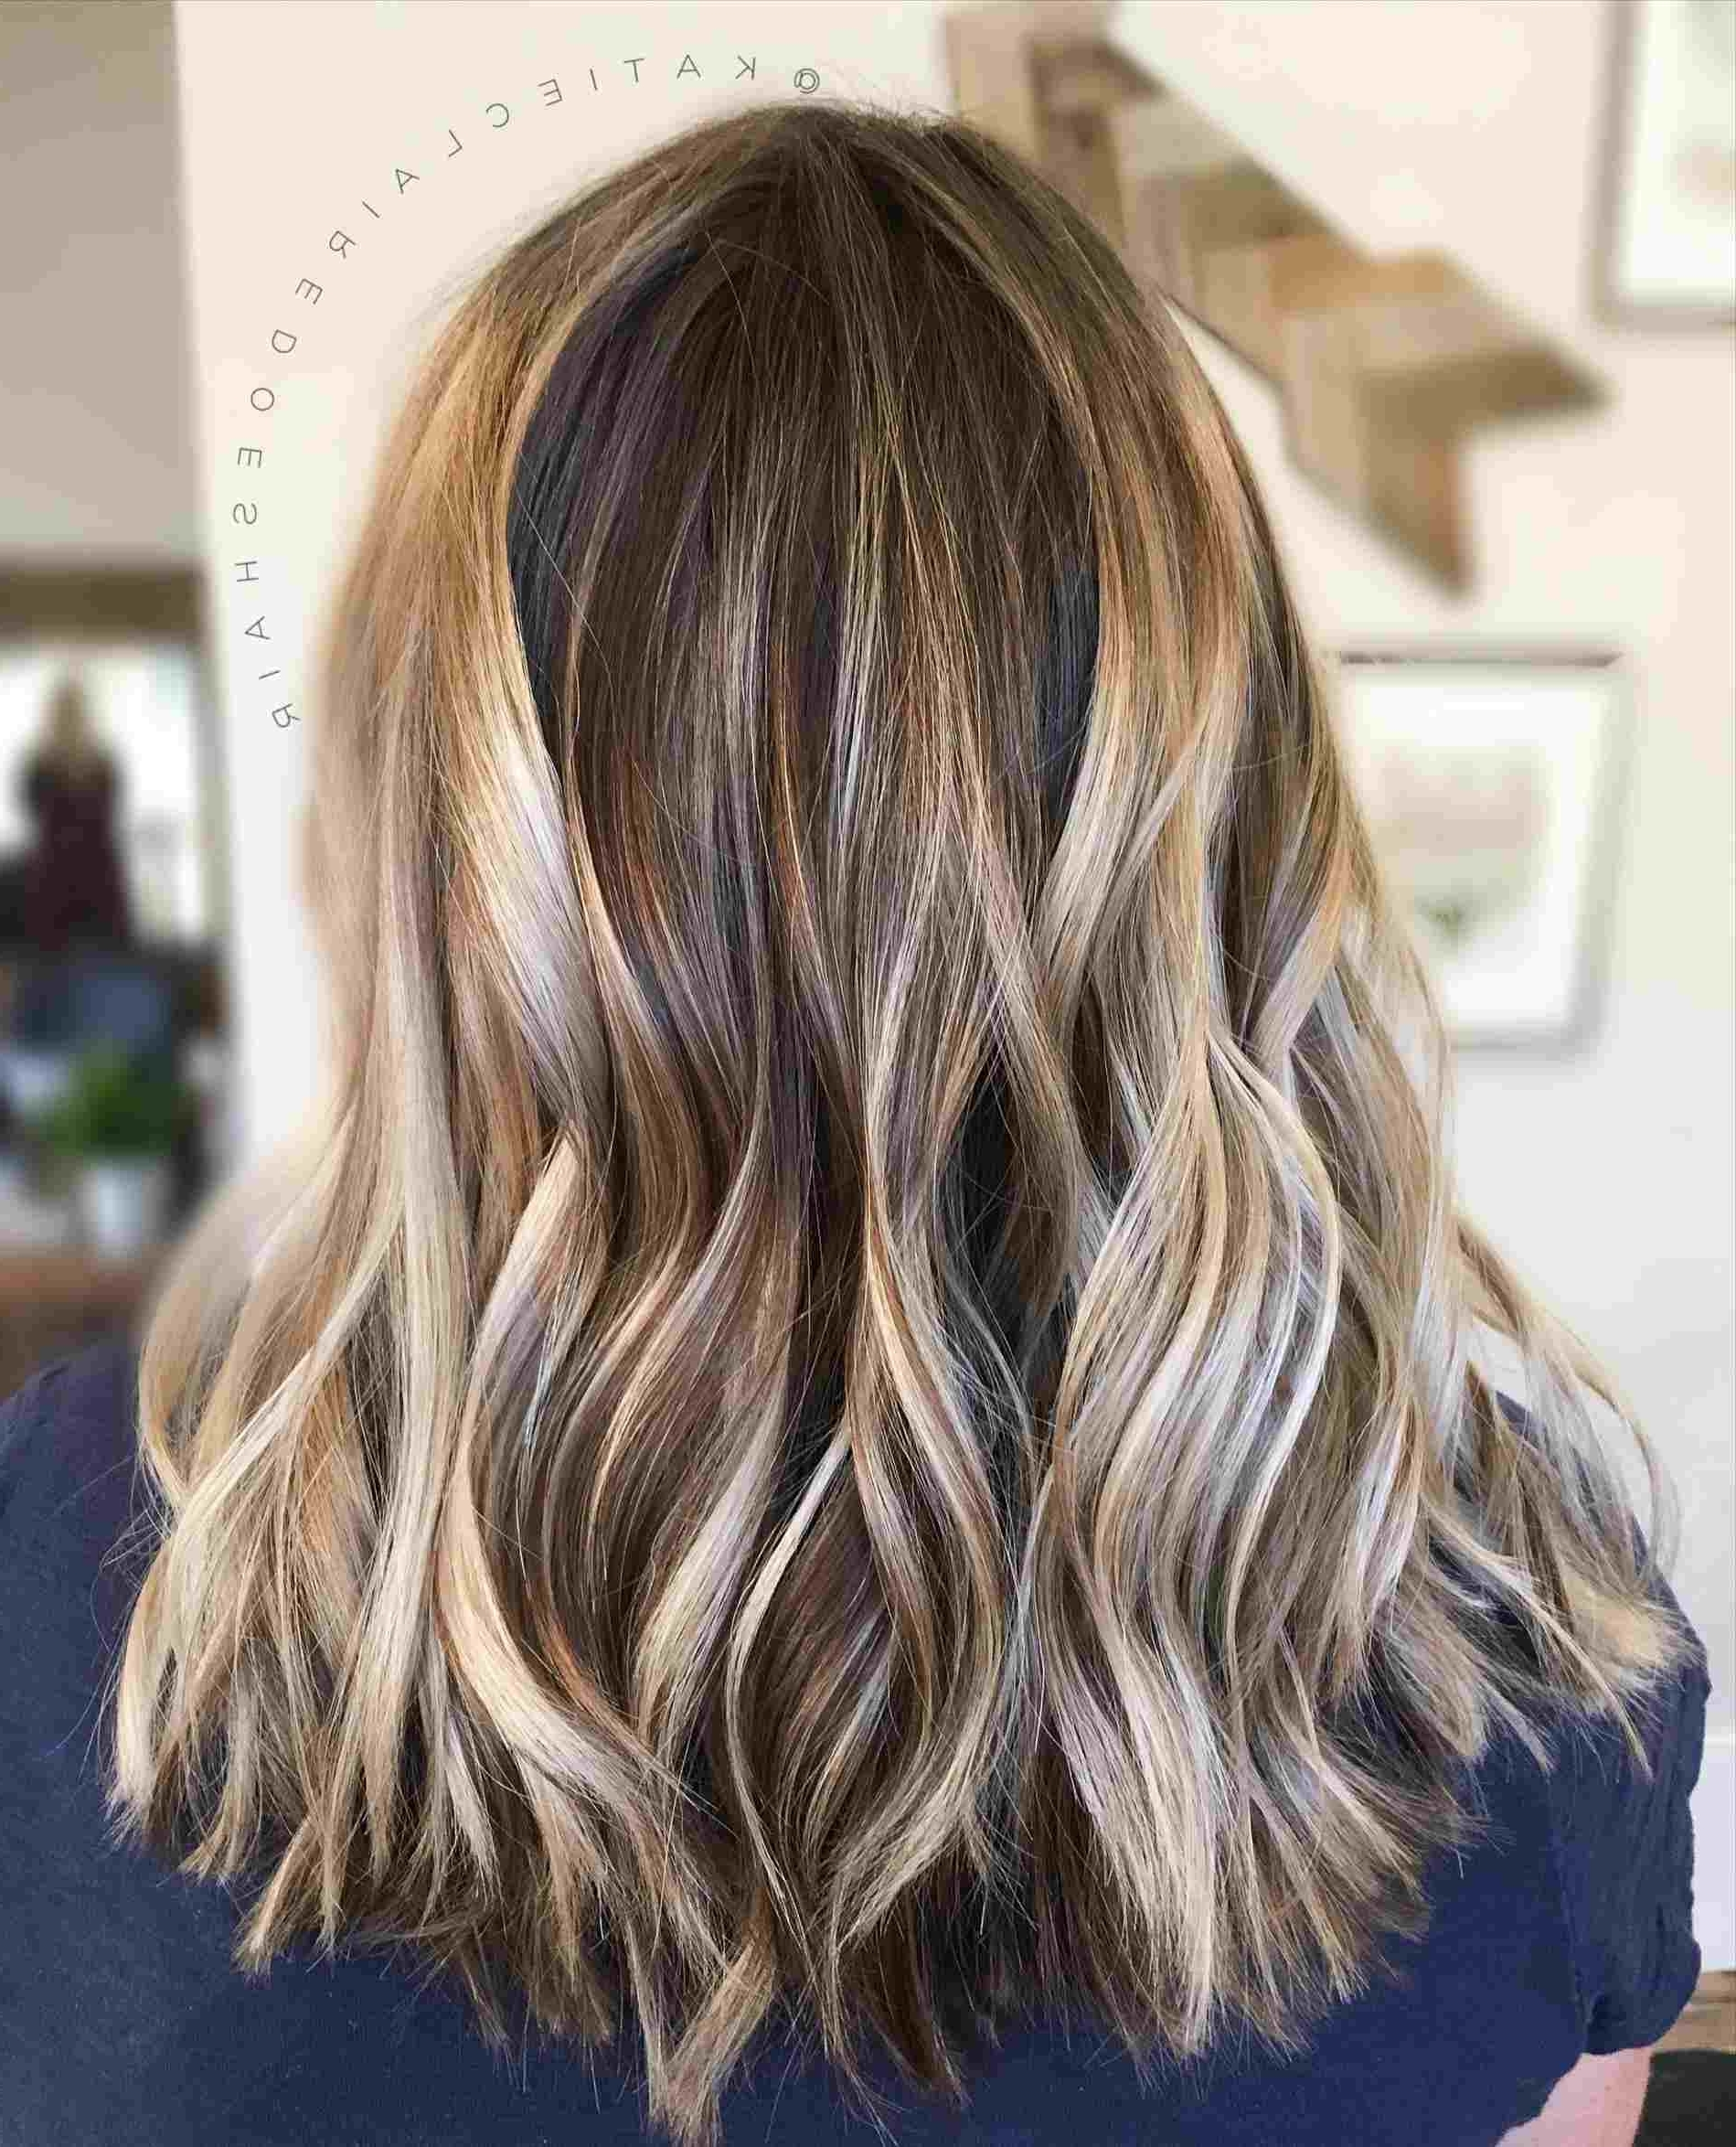 Well Liked Icy Highlights And Loose Curls Blonde Hairstyles Intended For Cool Dark Hair Balayage Ashy Icy Blonde Highlights Shadow Root Waves (View 19 of 20)